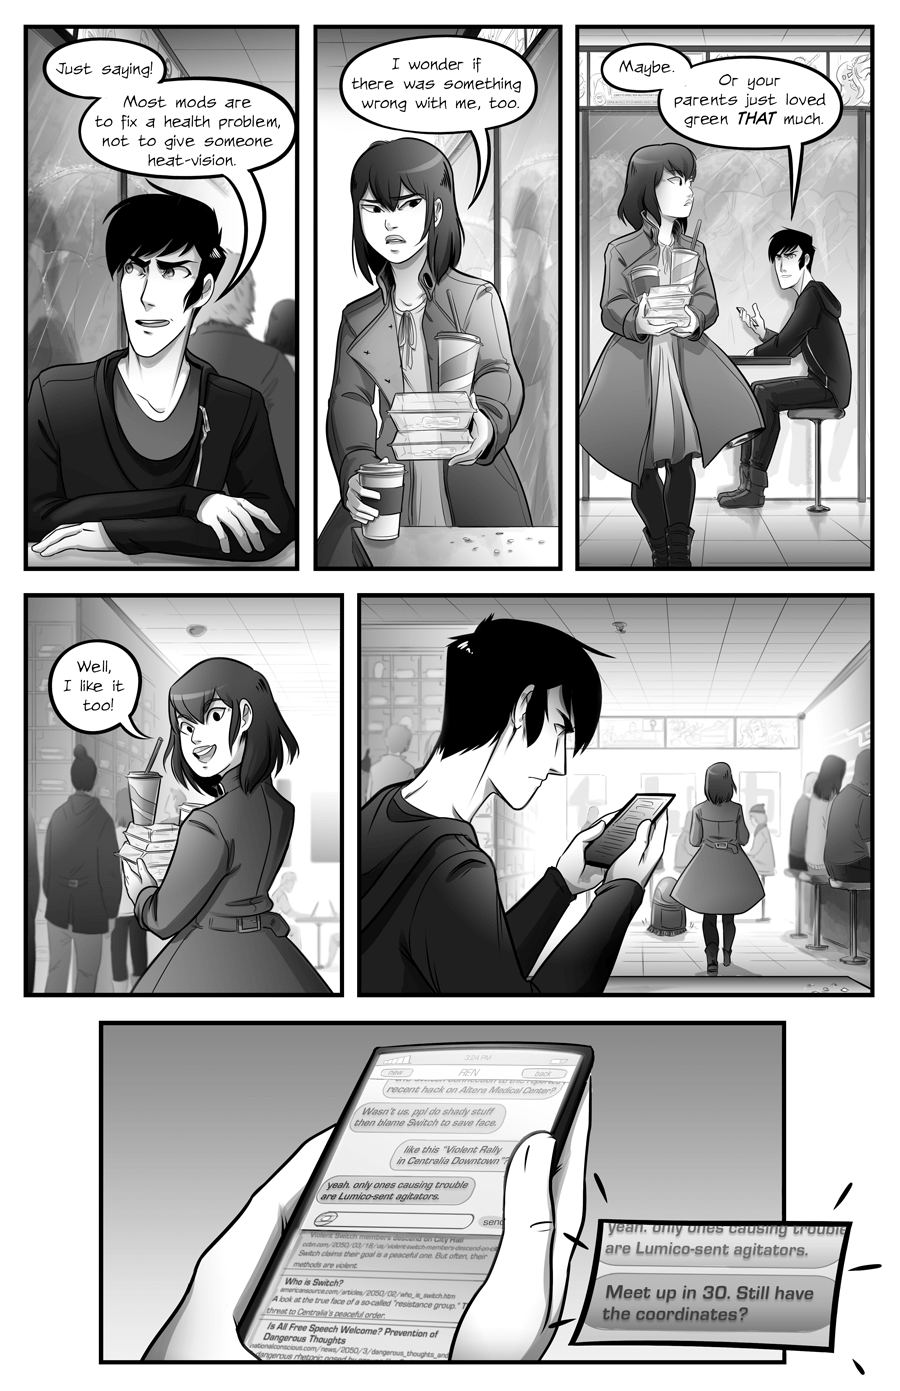 Centralia 2050 chapter 4 page 5